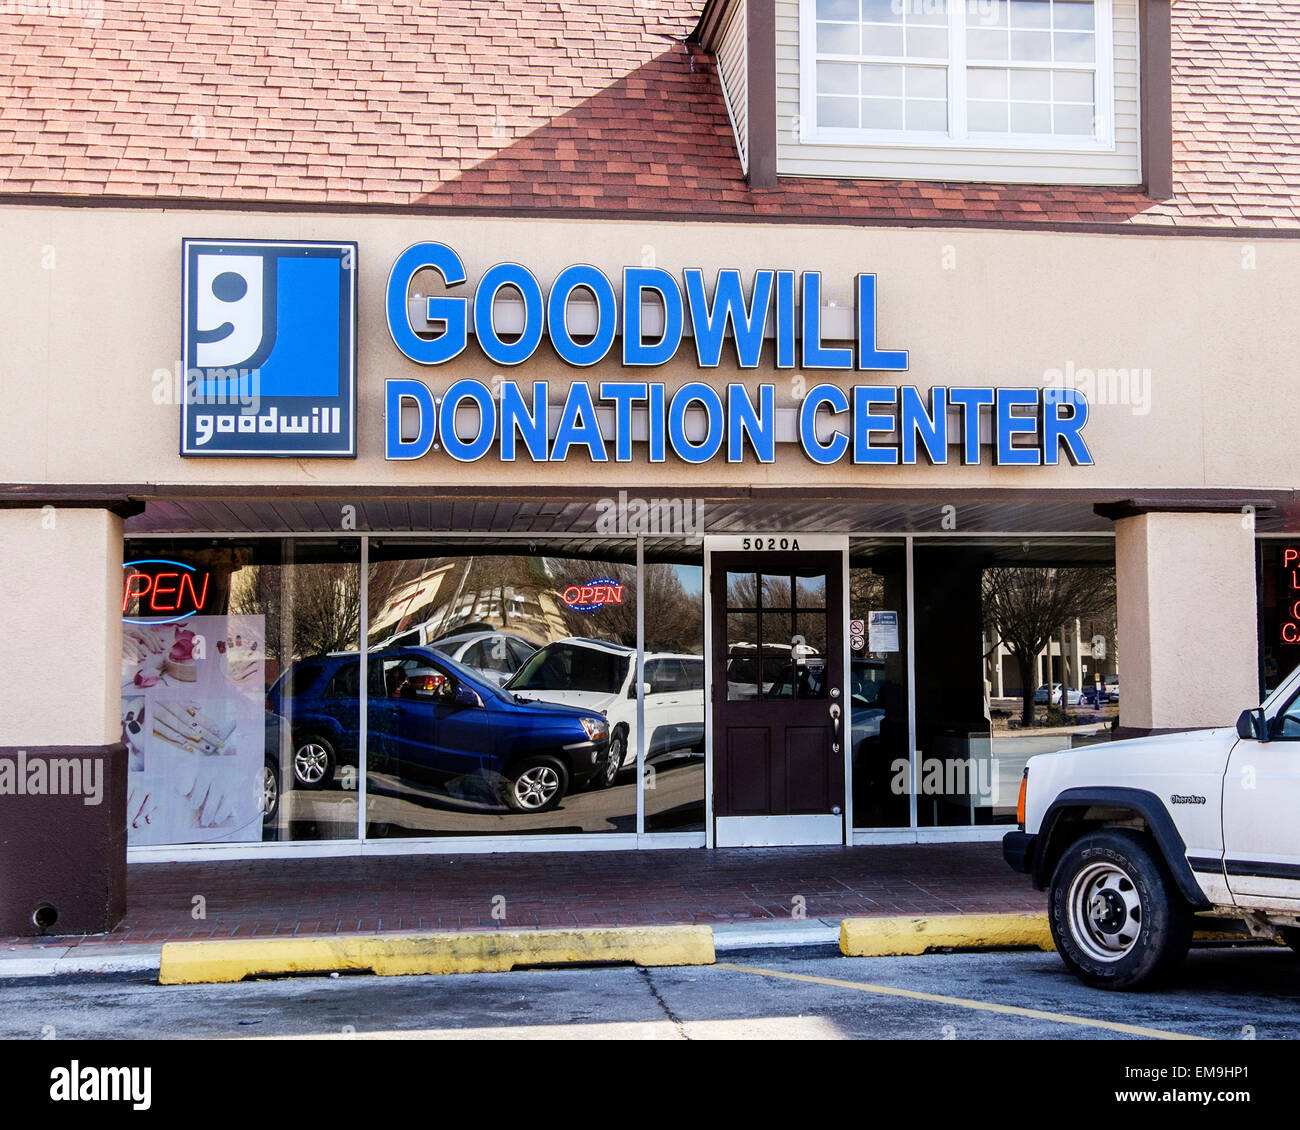 The storefront of a Goodwill donation center in Oklahoma City, Oklahoma, USA. - Stock Image